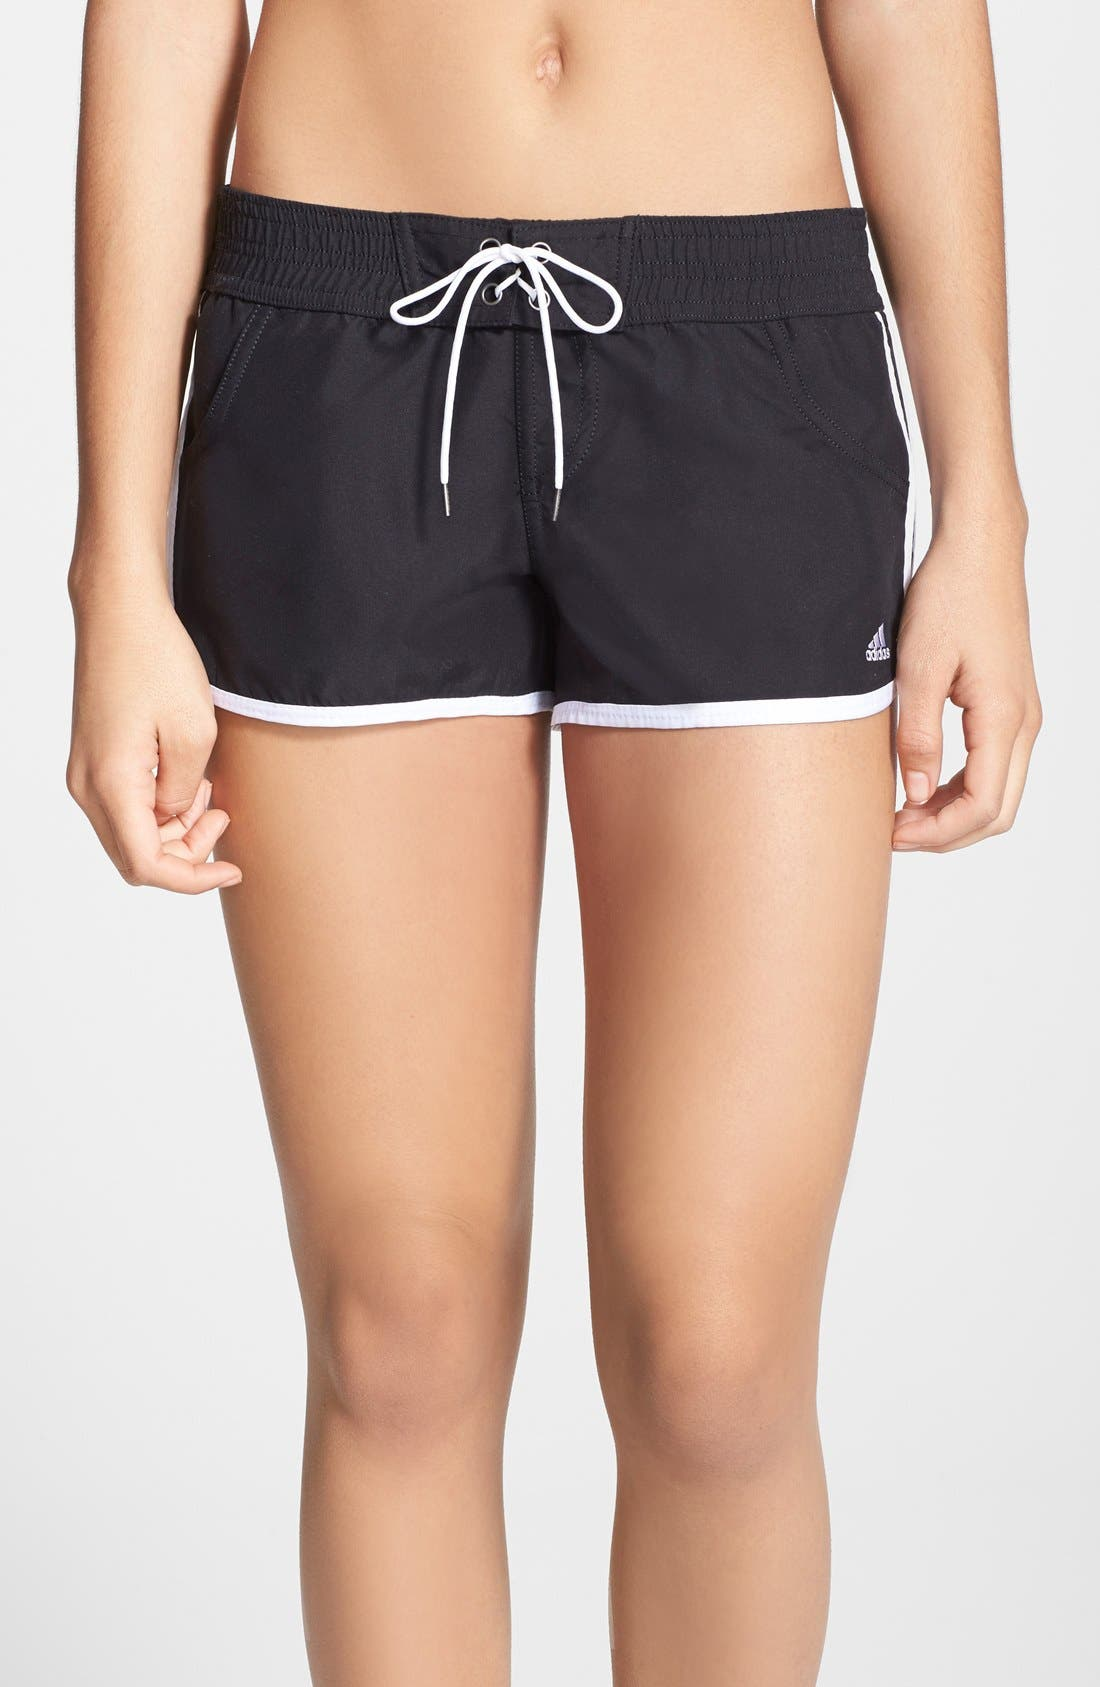 Alternate Image 1 Selected - adidas Tie Waist Board Shorts